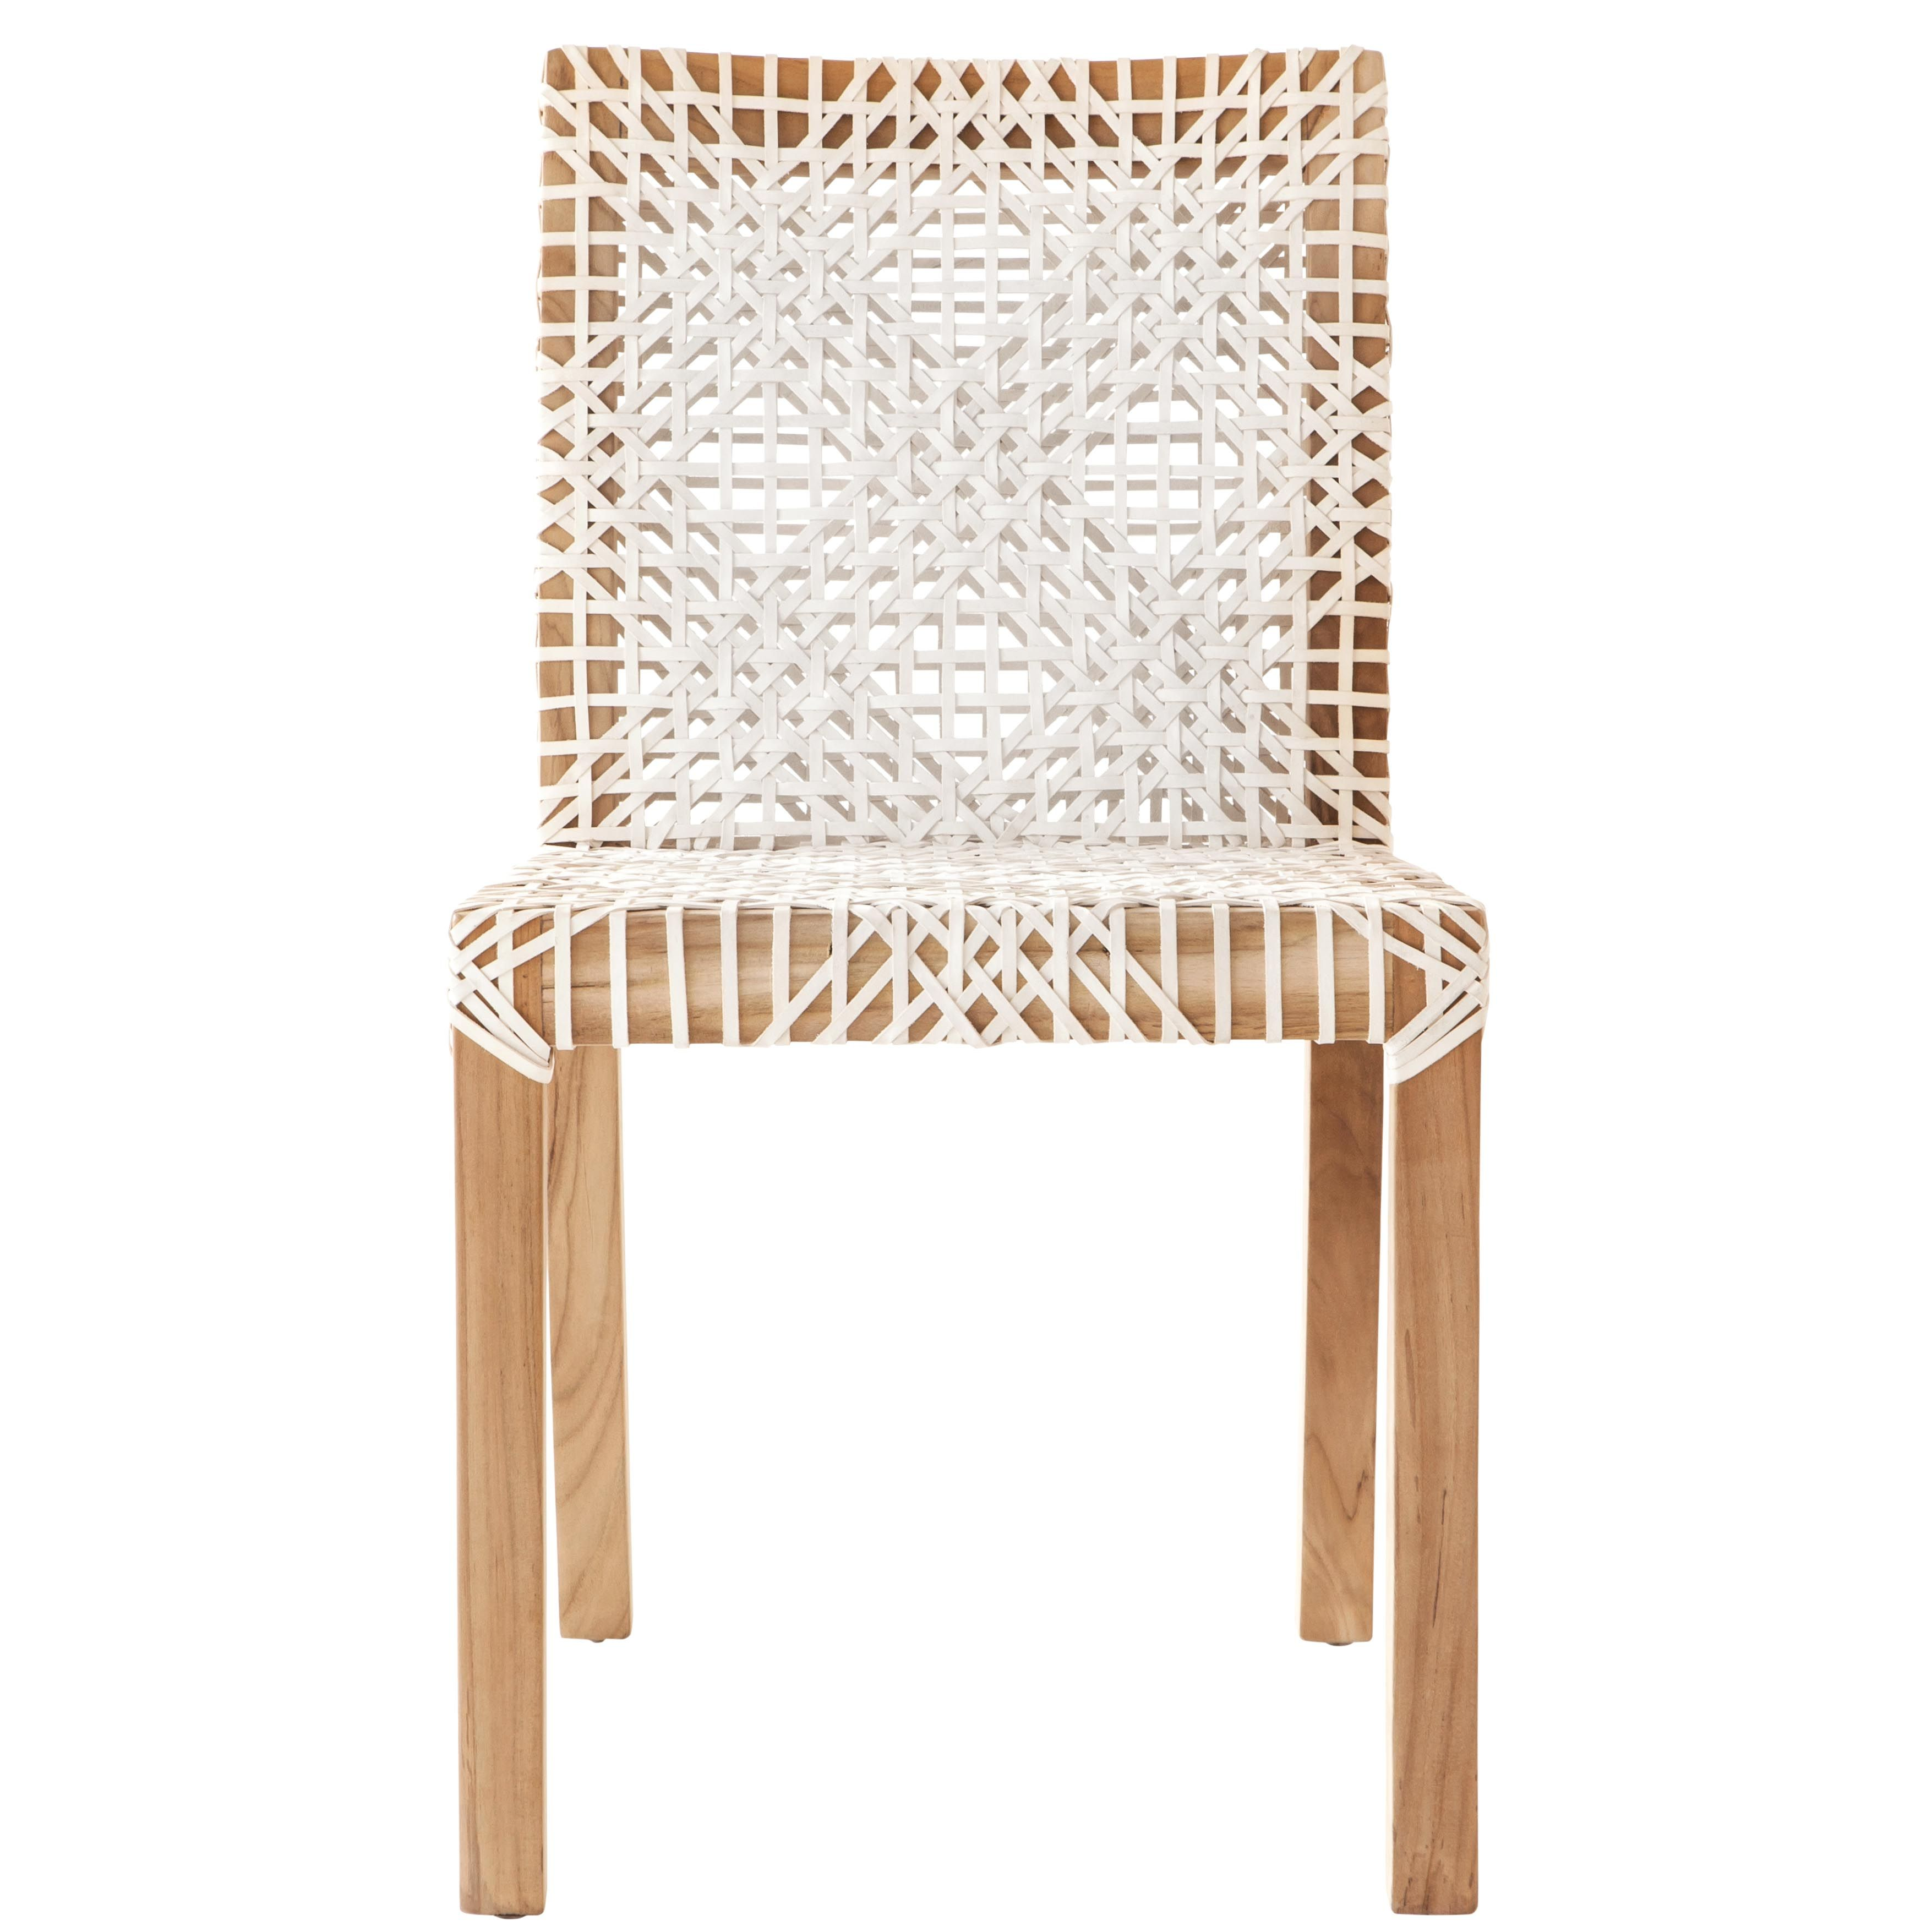 The Best Woven Dining Chairs Idea For Your Wicker Outdoor Dining